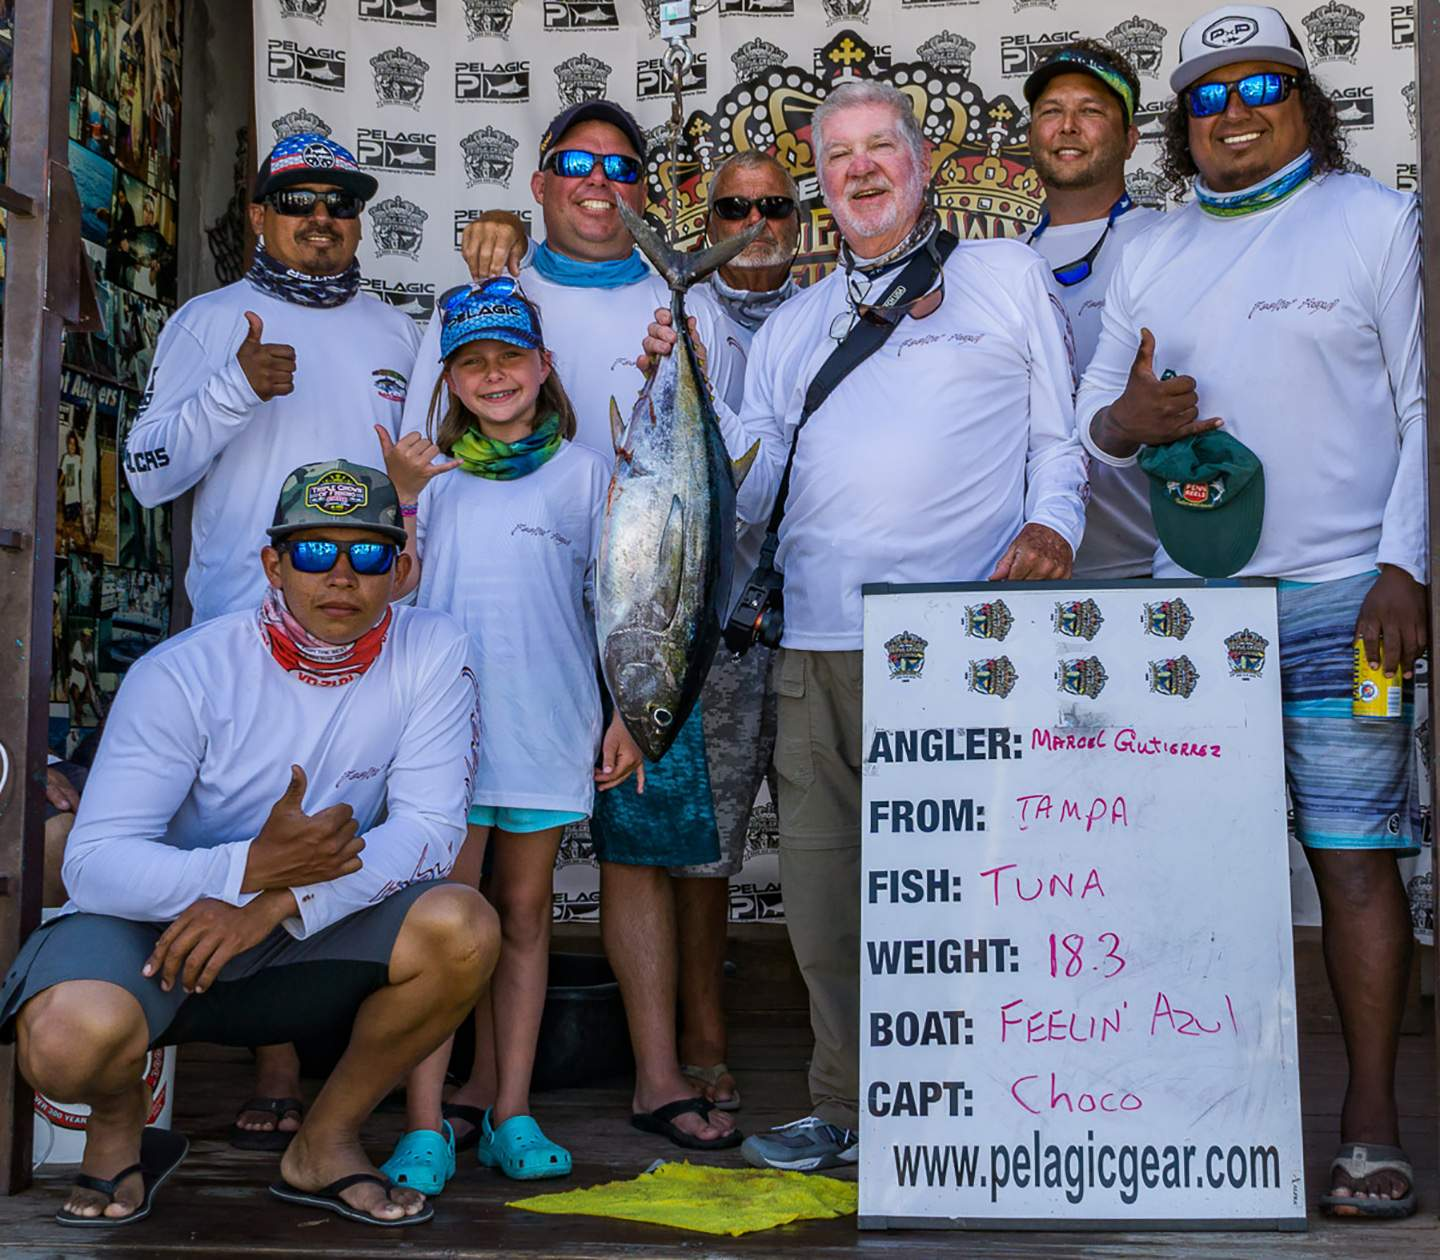 2019 Pelagic Triple Crown Cabo Feelin Azul Tuna Day 2